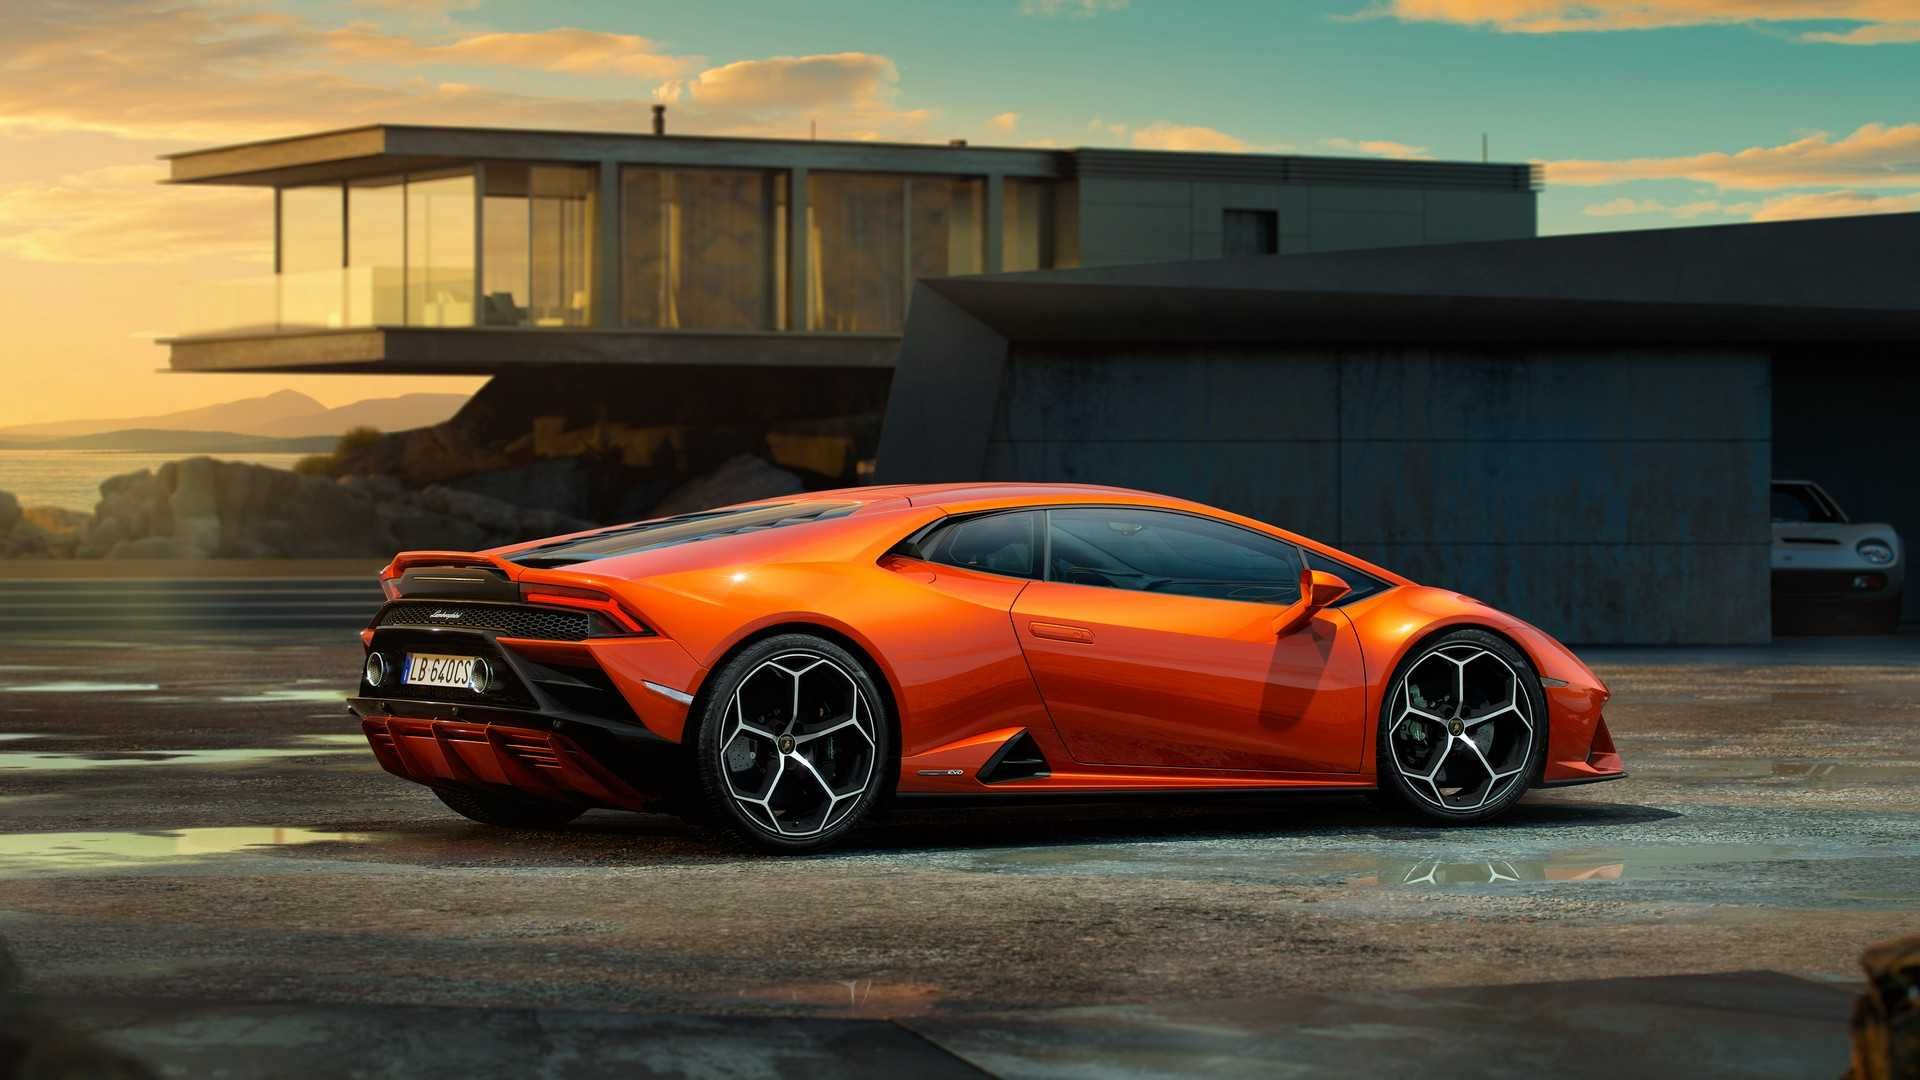 The New Lamborghini Huracan Evo Supercar Features More Power And